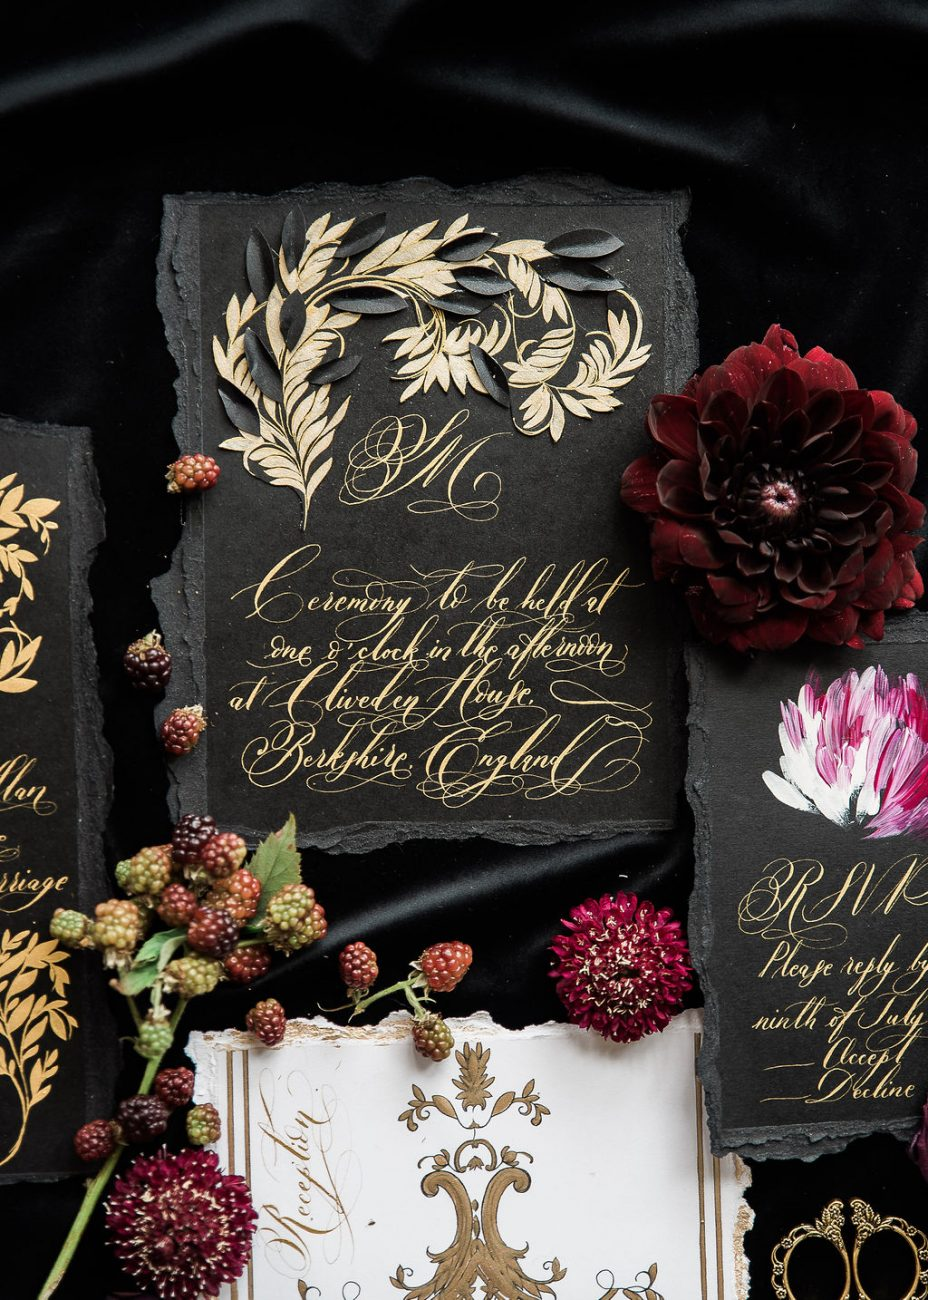 Black and gold black tie wedding stationery for a luxury wedding in the Shangri La Paris, France